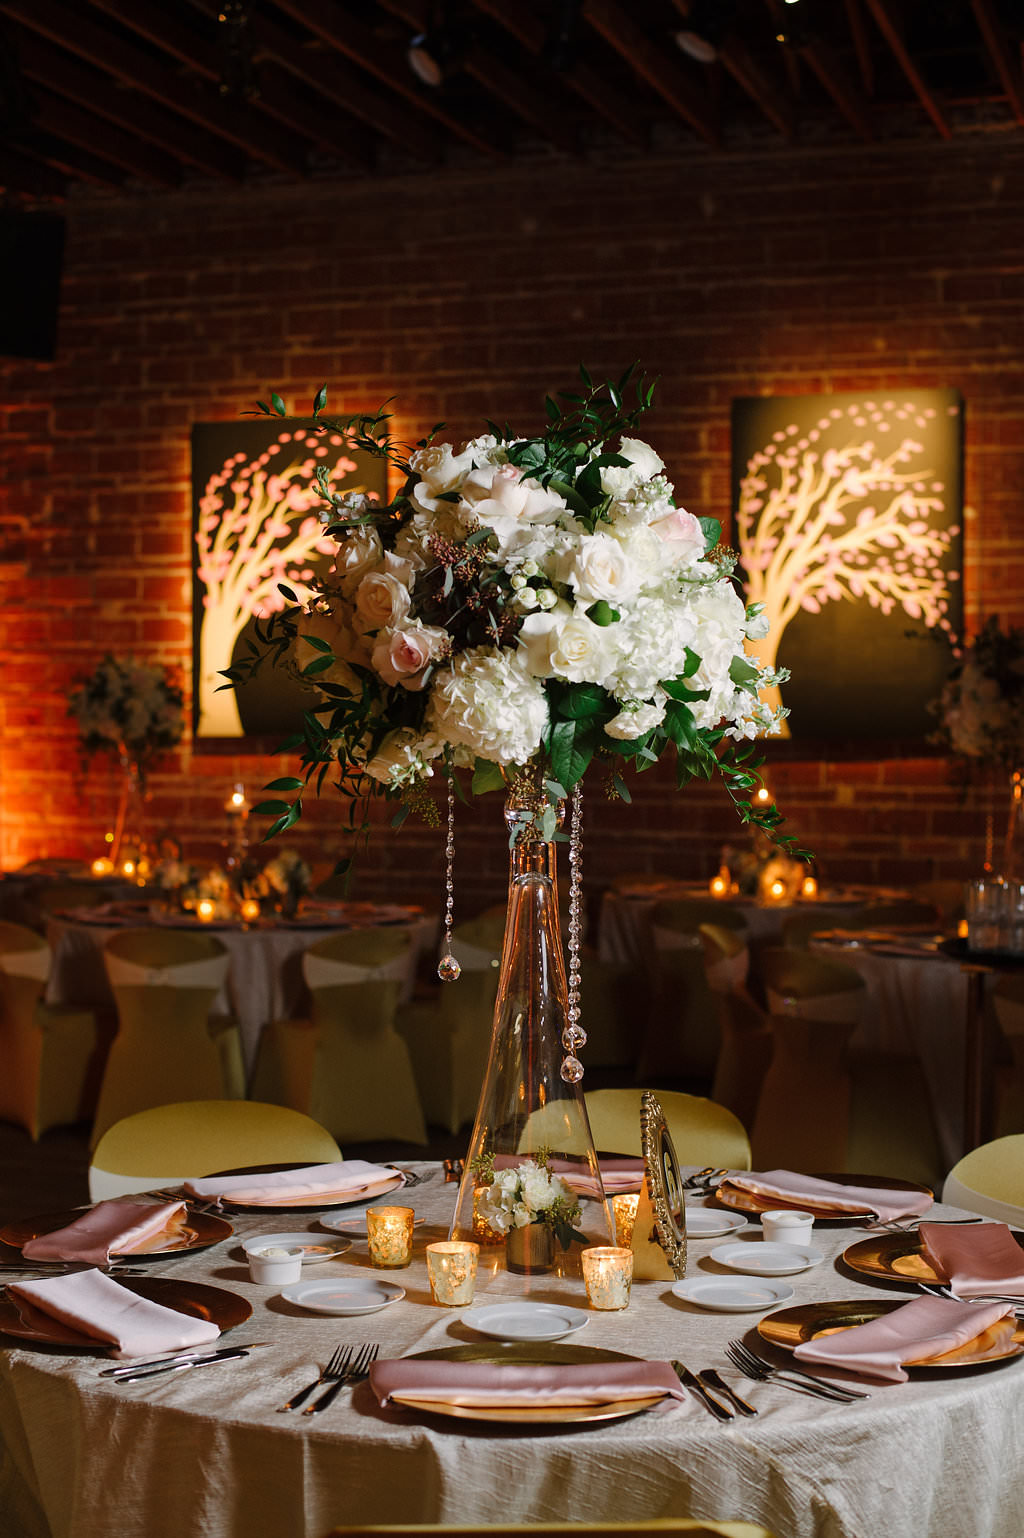 Gold and Pink Wedding Reception with Round Tables with Satin Linens, Gold Fabric Covered Chairs, Extra Tall Pink FLoral and Greenery Centerpieces in Glass Vases with Hanging Crystals